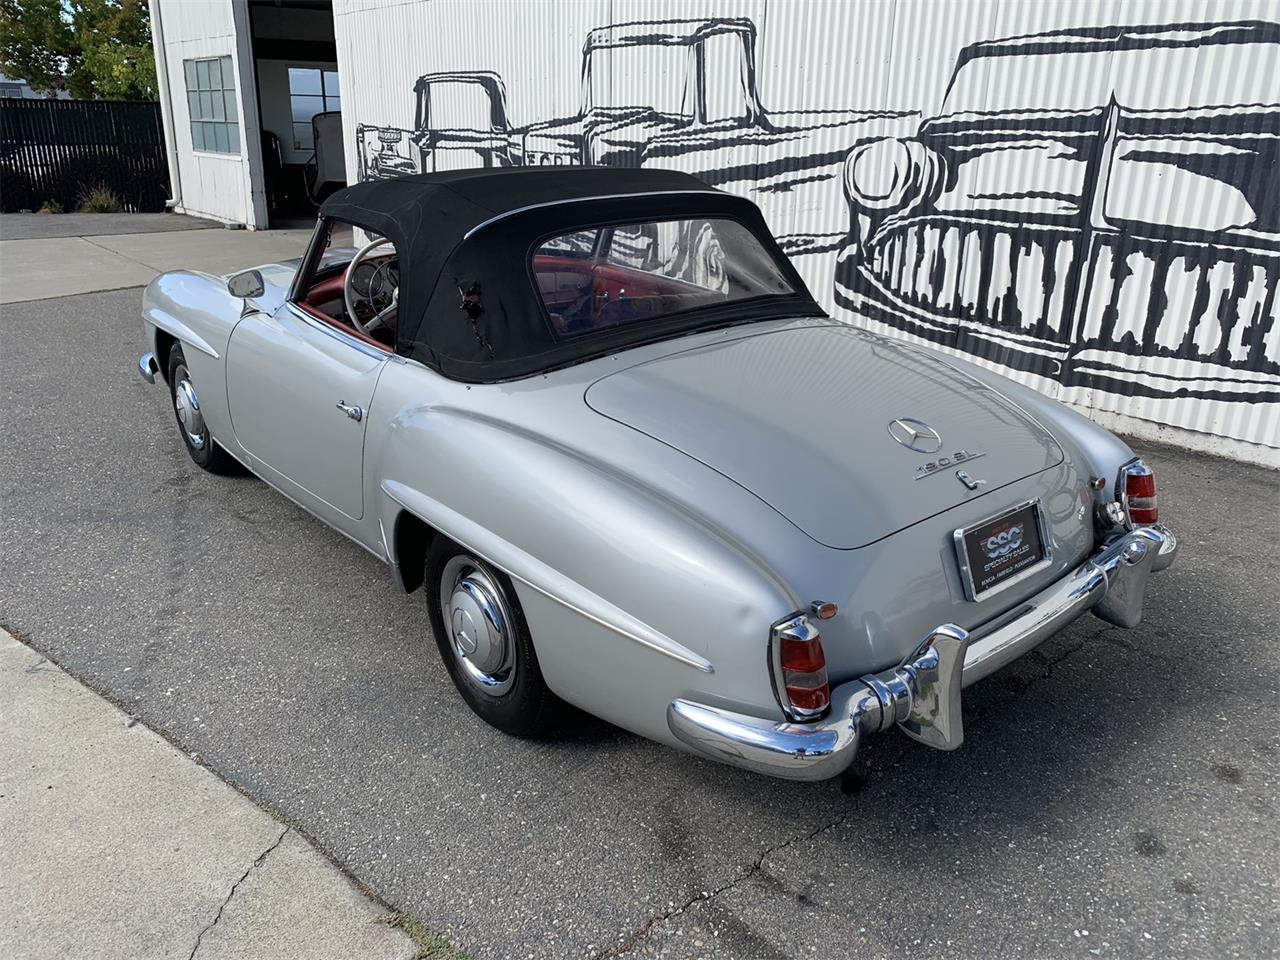 1959 Mercedes-Benz 190SL (CC-1151850) for sale in Fairfield, California